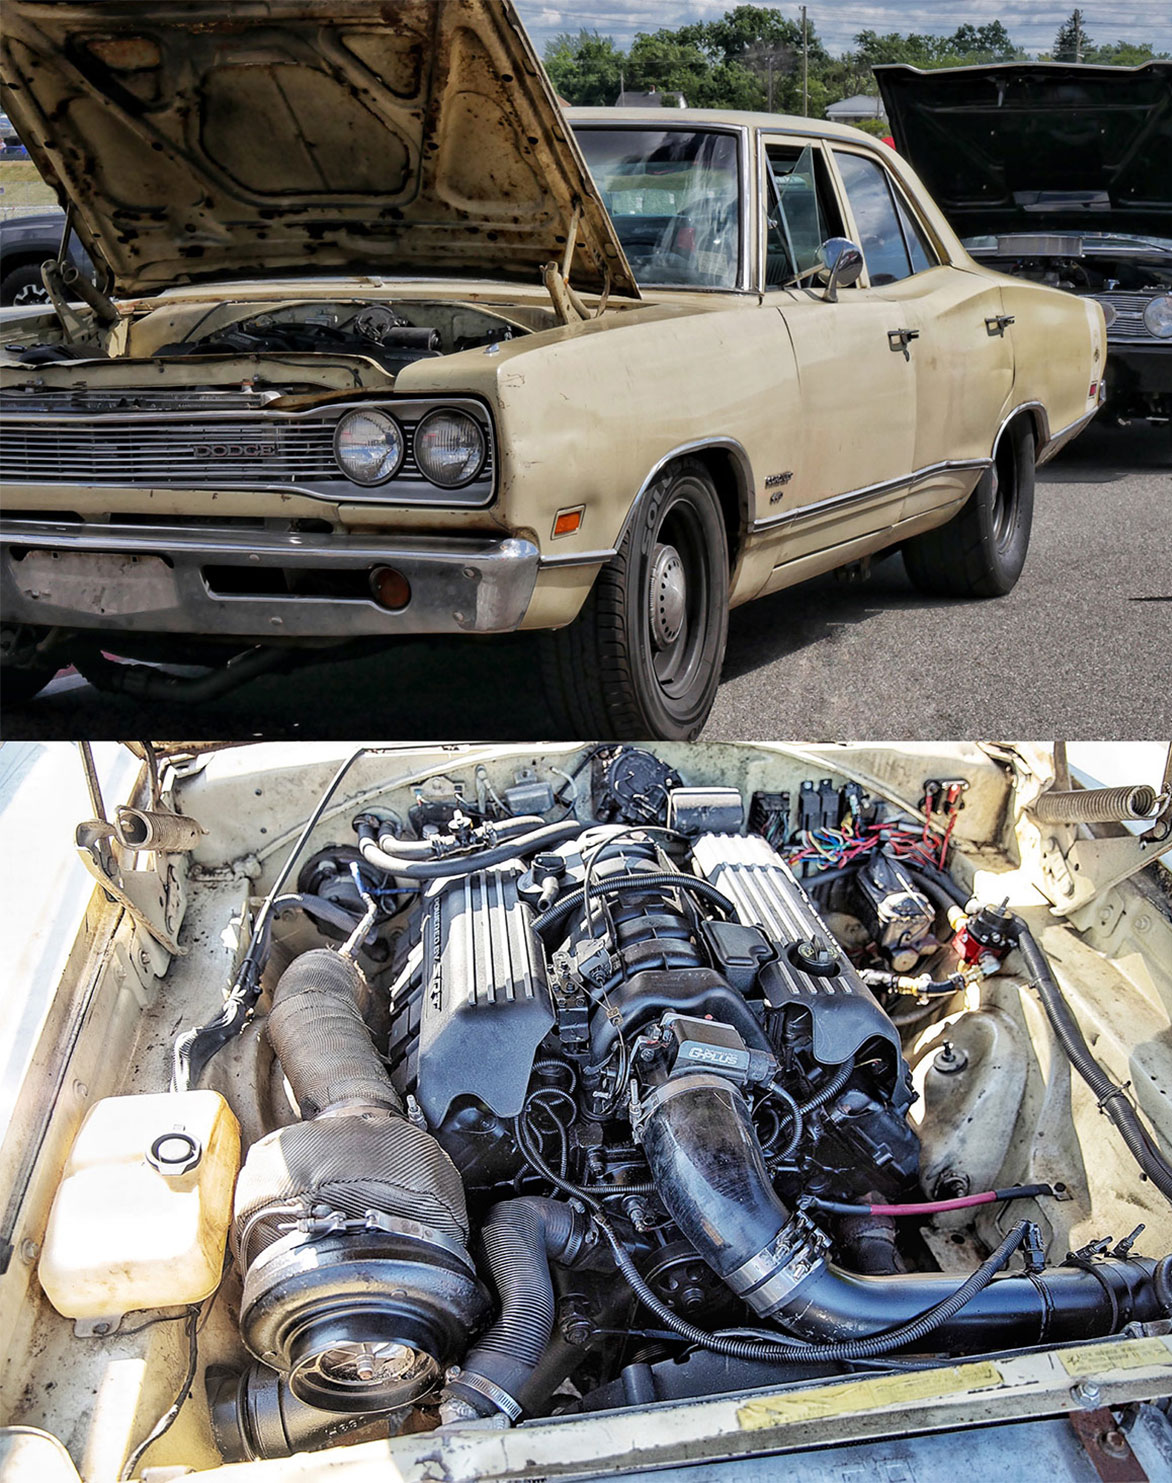 "As seen at Roadkill Nights Powered by Dodge: This 1969 Coronet has an SRT Hellcat shortblock, heads and other parts from a gen 3 HEMI® engine and a giant turbo. ""Wanna Bee"" is an ongoing project from a dude named Corey with the Fuel Injection Sucks YouTube channel."